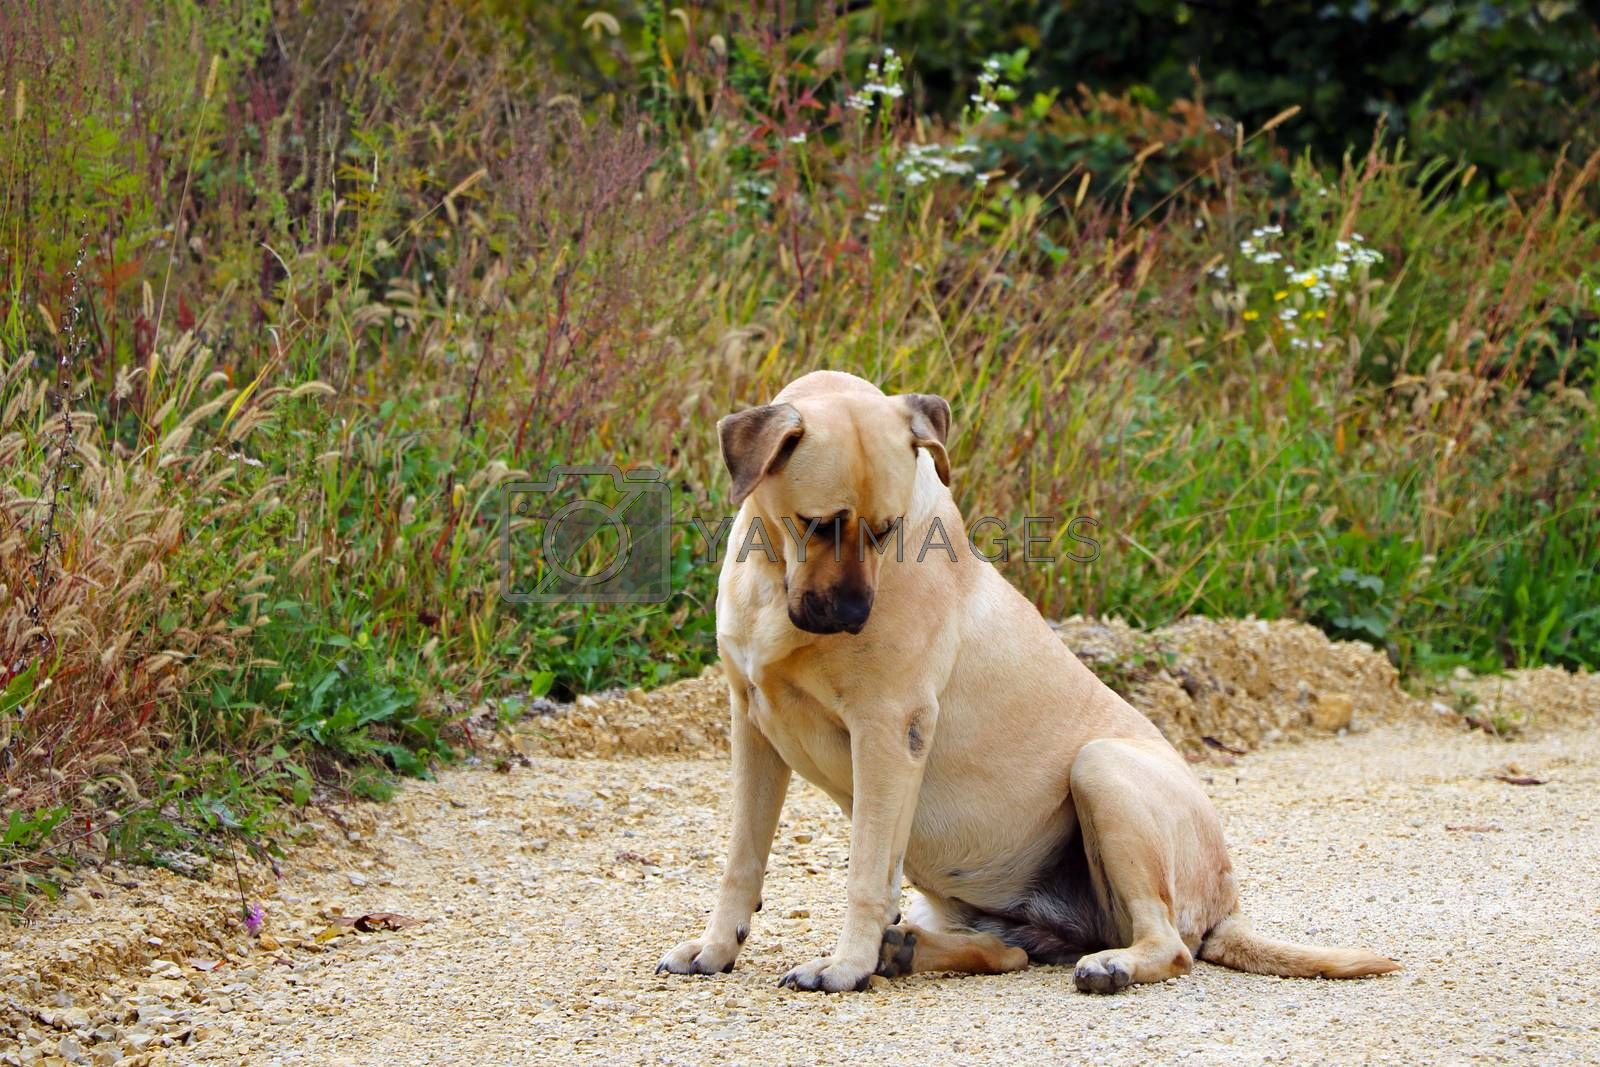 A large light-colored dog sits on the ground with his head down